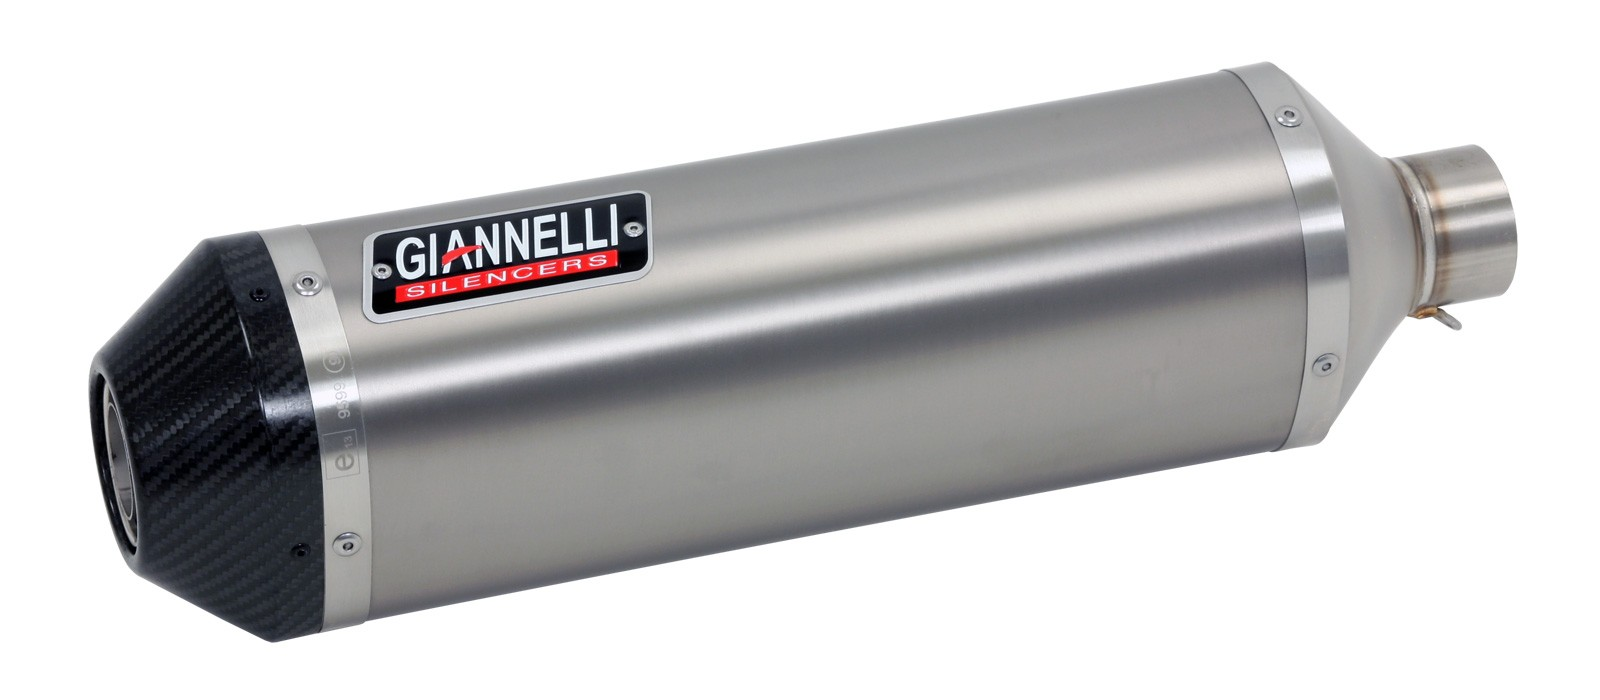 ESCAPES GIANNELLI YAMAHA - Sistema completo IPERSPORT Silenciador aluminio y colector racing Yamaha T-MAX 530 Giannelli